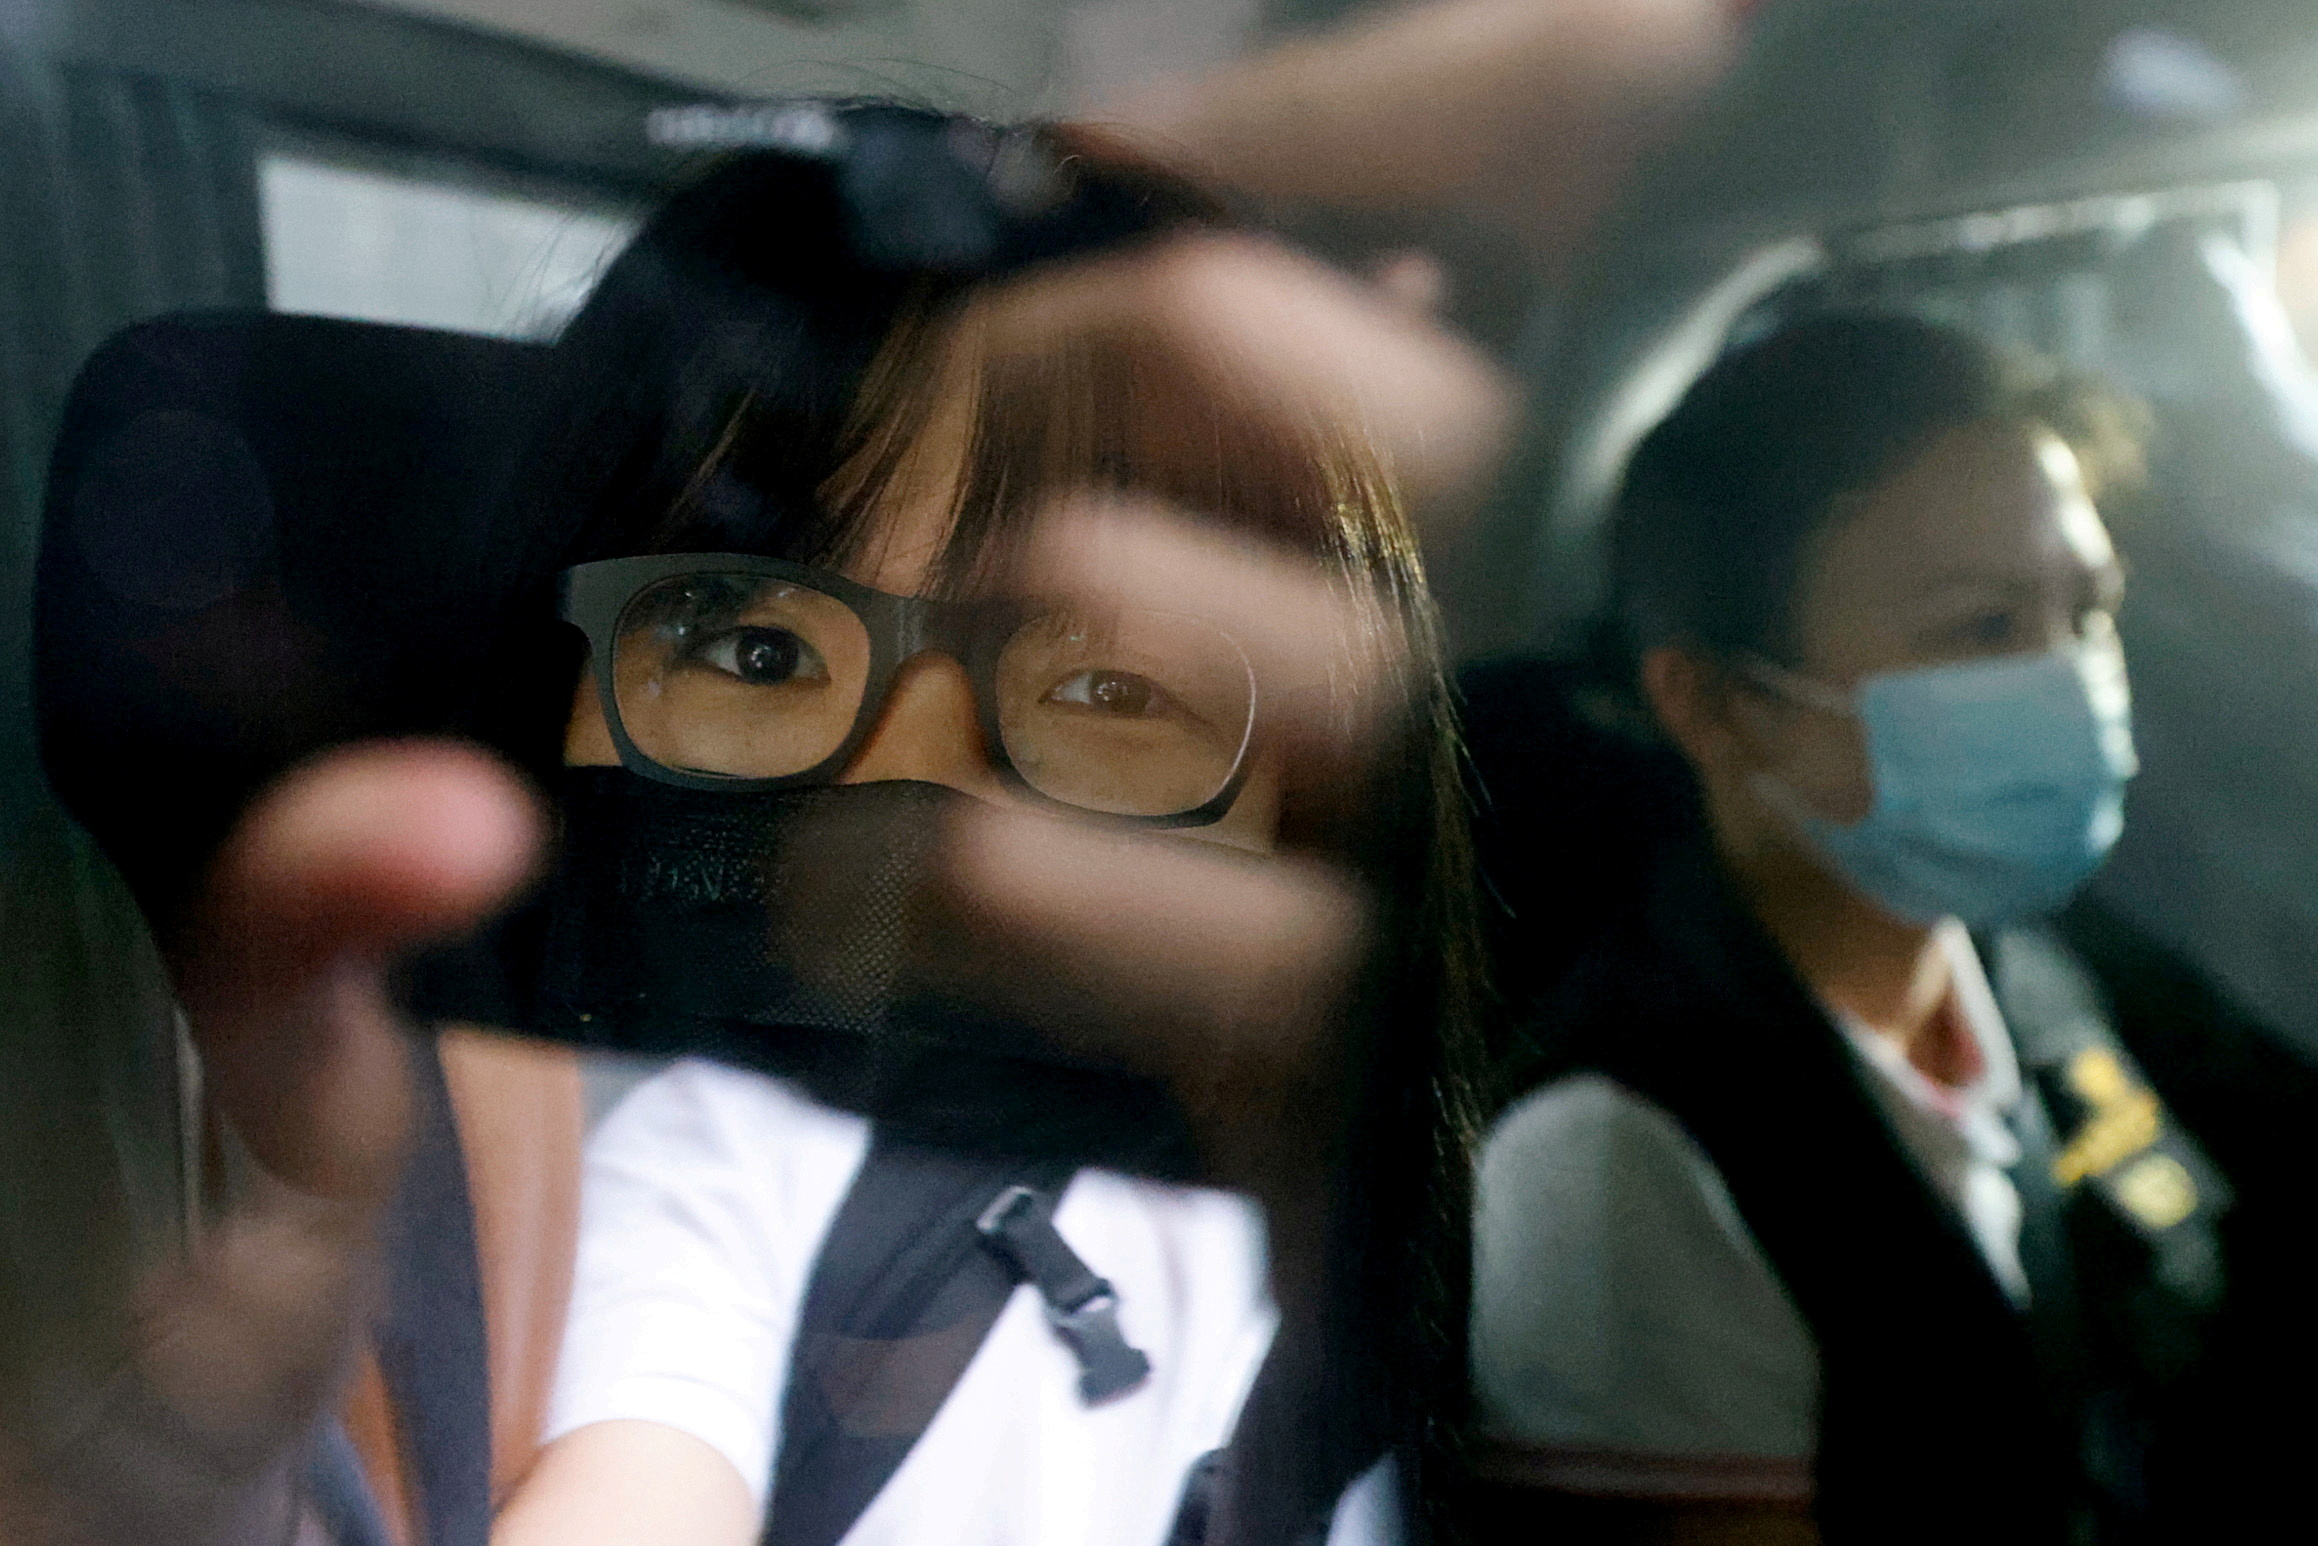 Hong Kong Alliance in Support of Patriotic Democratic Movements of China Vice-Chairwoman Tonyee Chow Hang-tung is seen inside a vehicle after being detained in Hong Kong, China, September 8, 2021. REUTERS/Tyrone Siu/File Photo